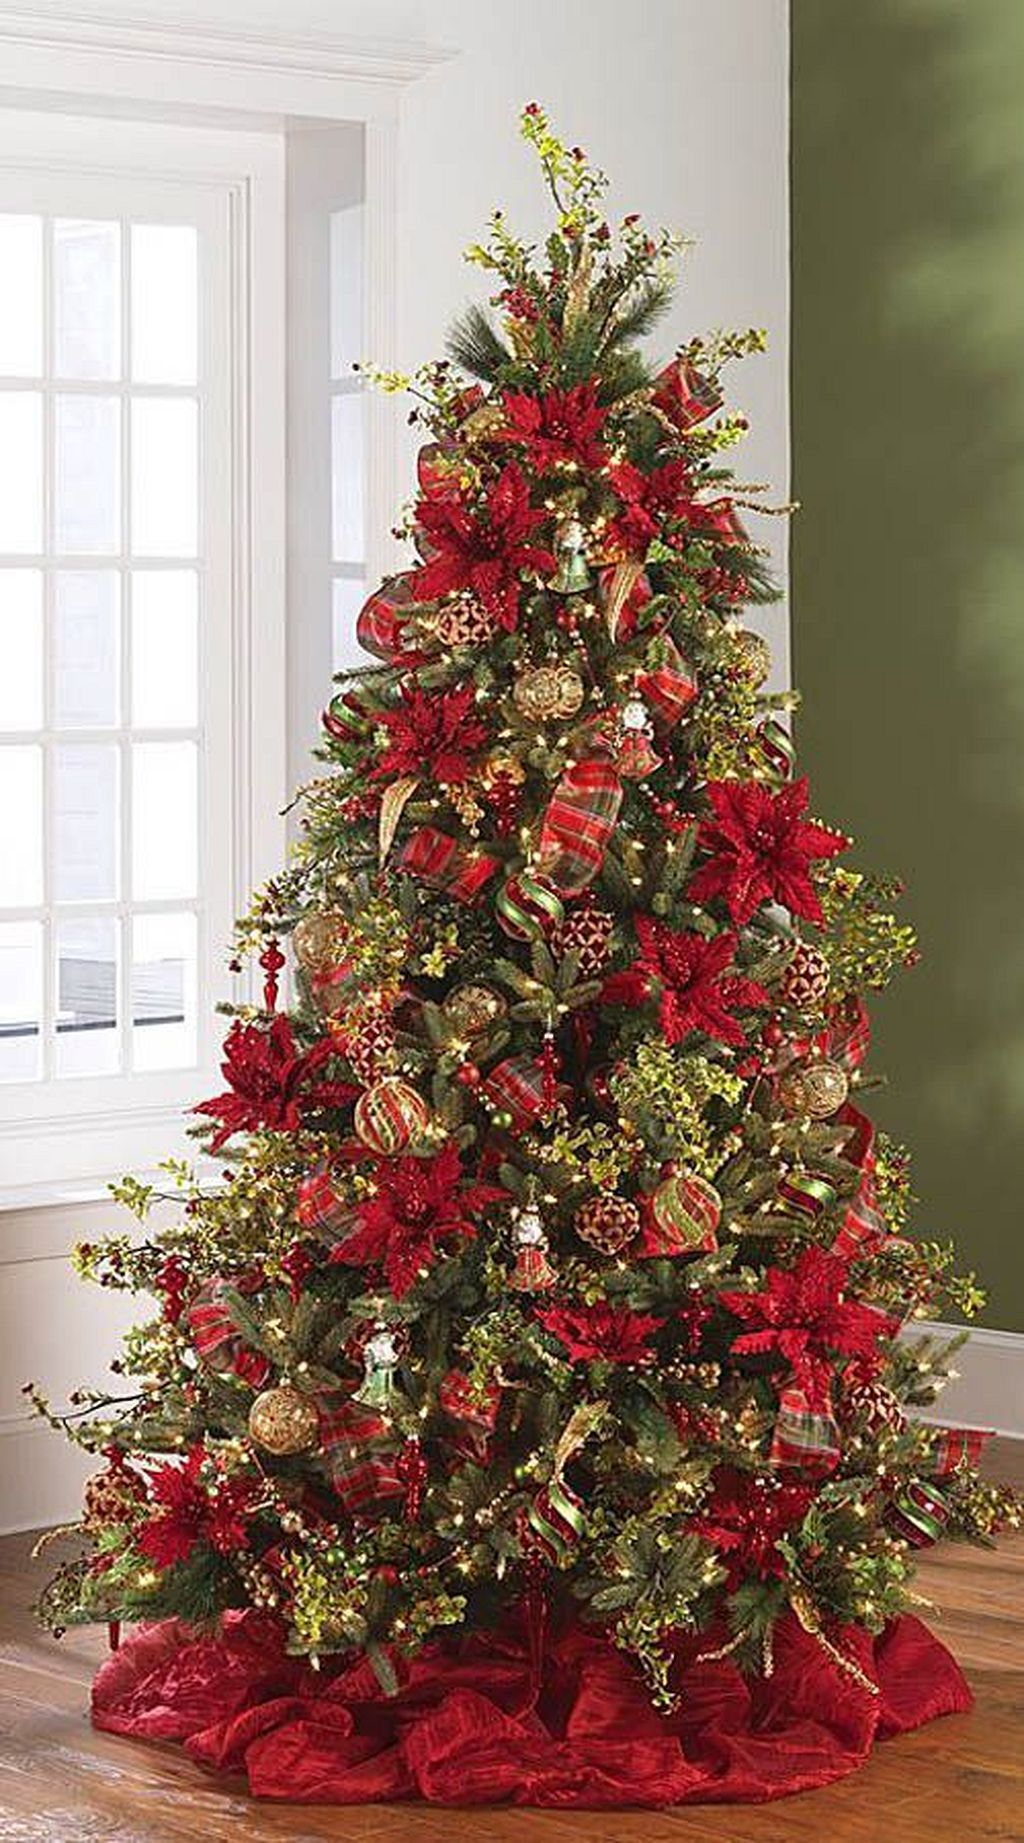 Christmas Tree Decorating Ideas.30 Awesome Christmas Tree Decorating Ideas Eazy Glam